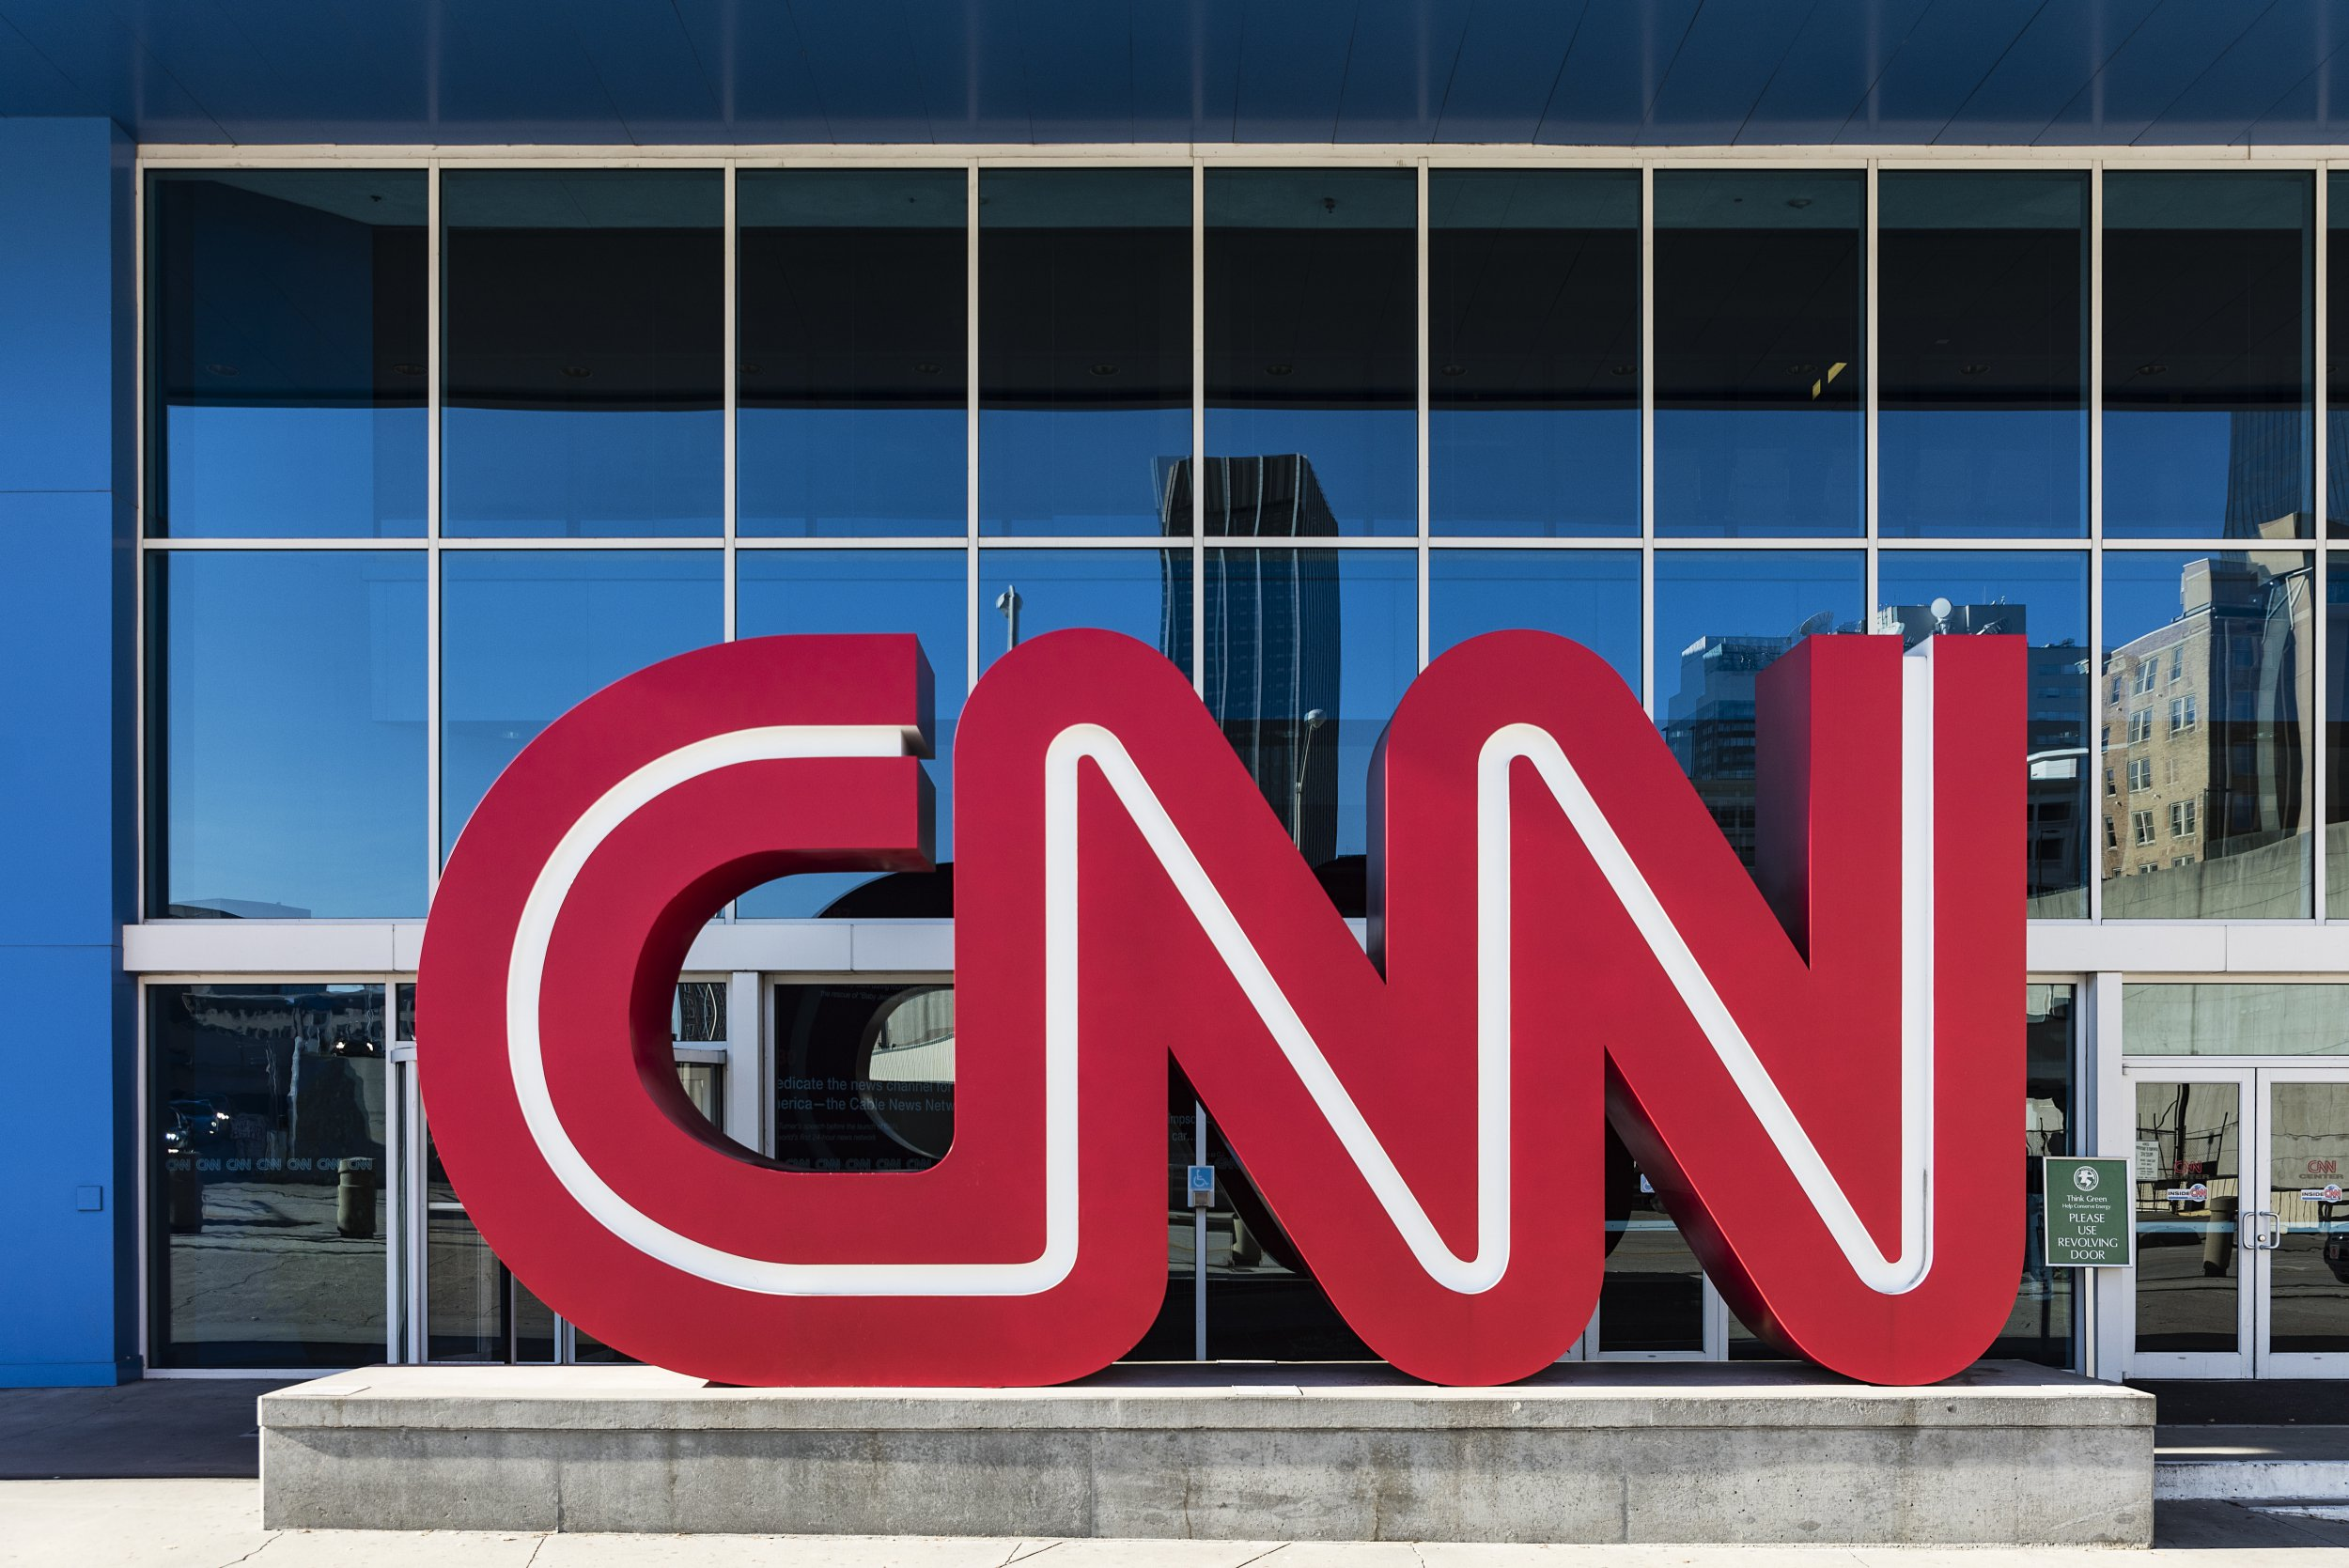 'Fake news. I'm coming to gun you all down': Man arrested for threatening to kill CNN staff